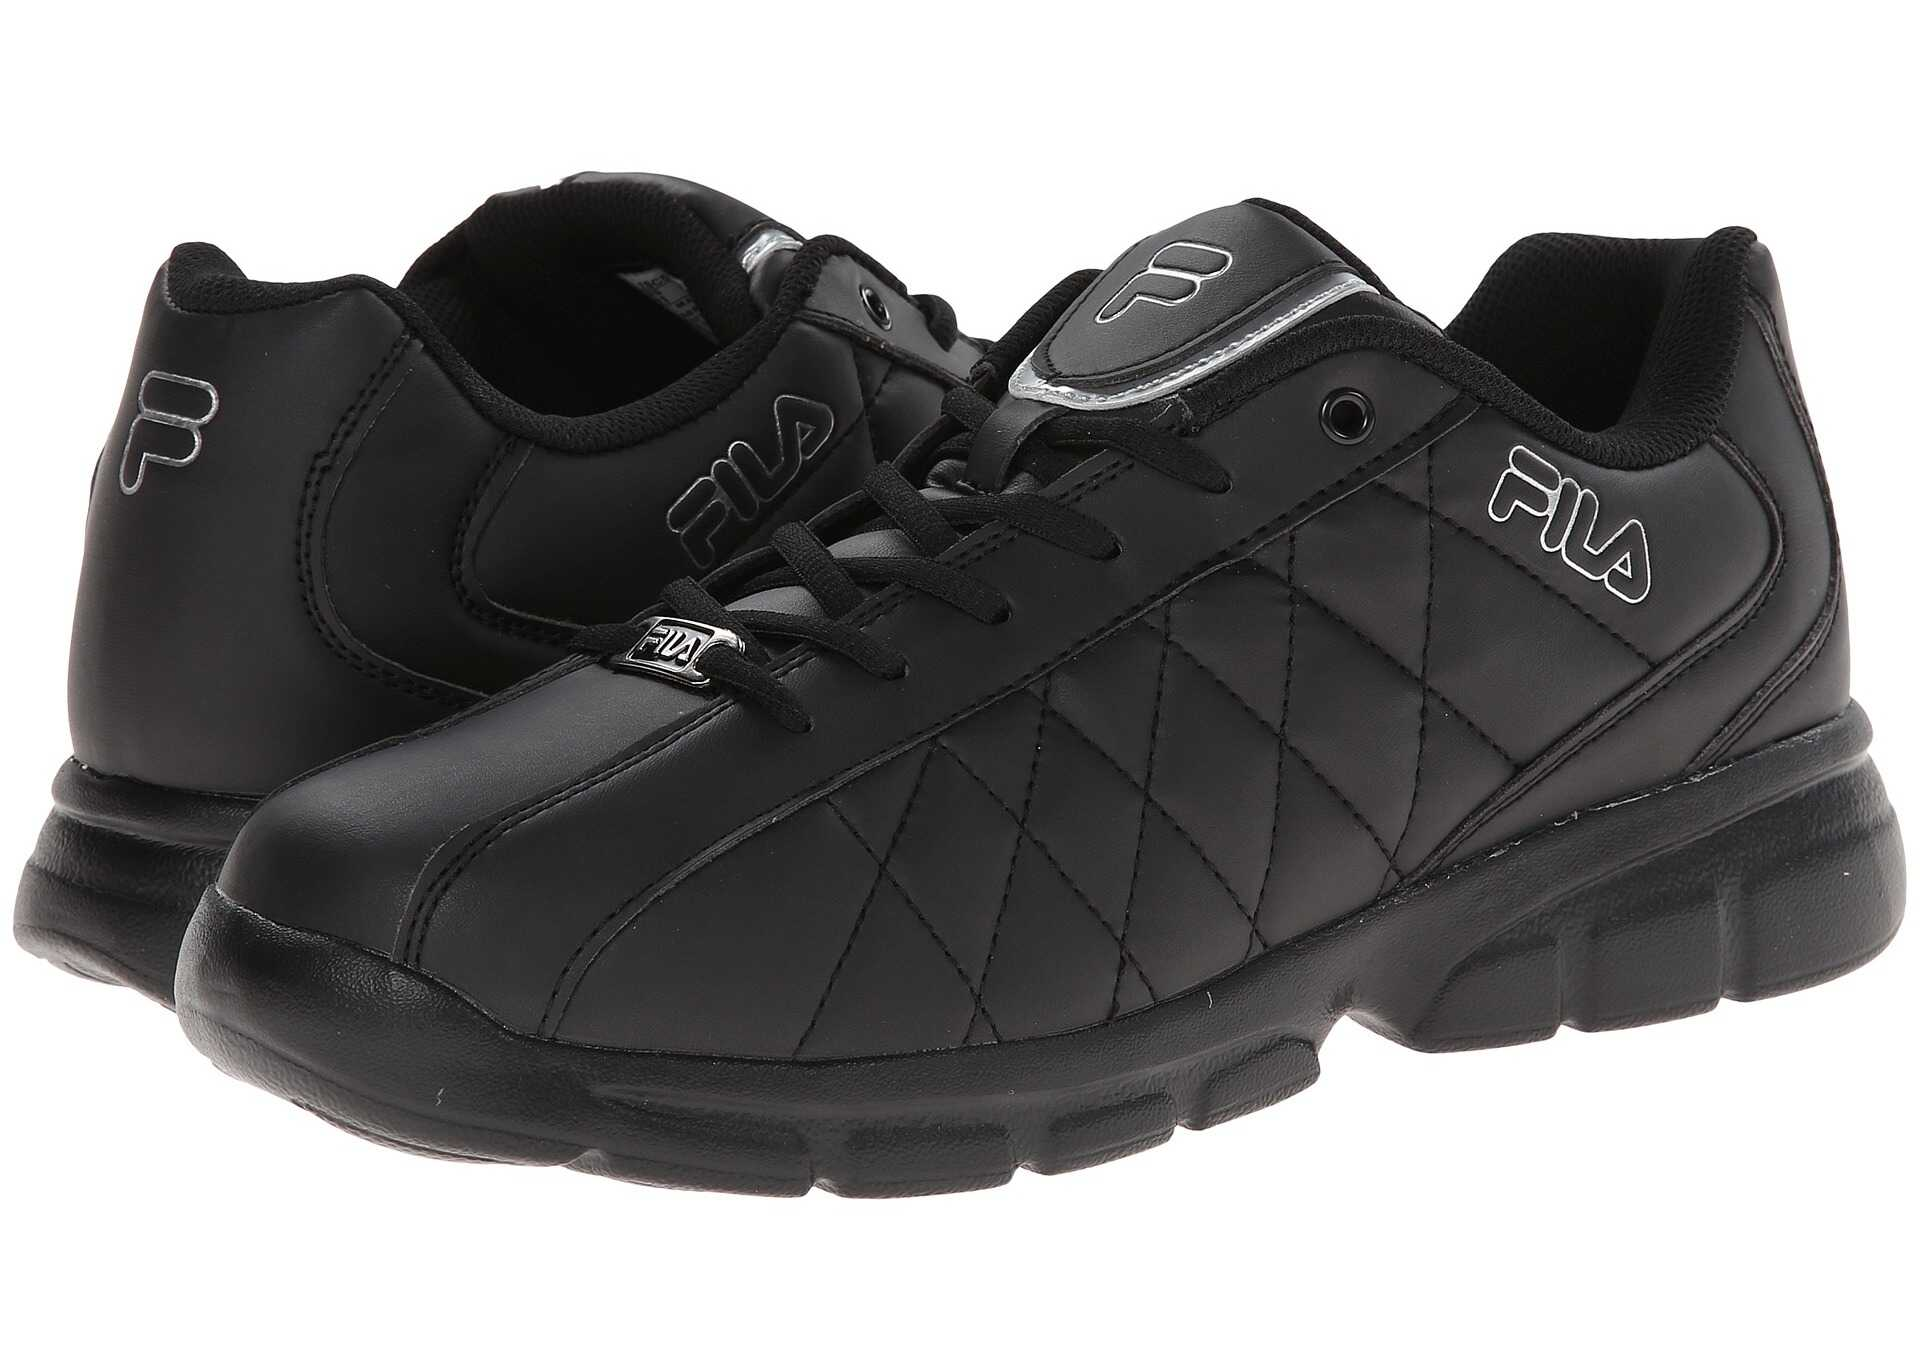 Fila Fulcrum 3 Black/Black/Metallic Silver